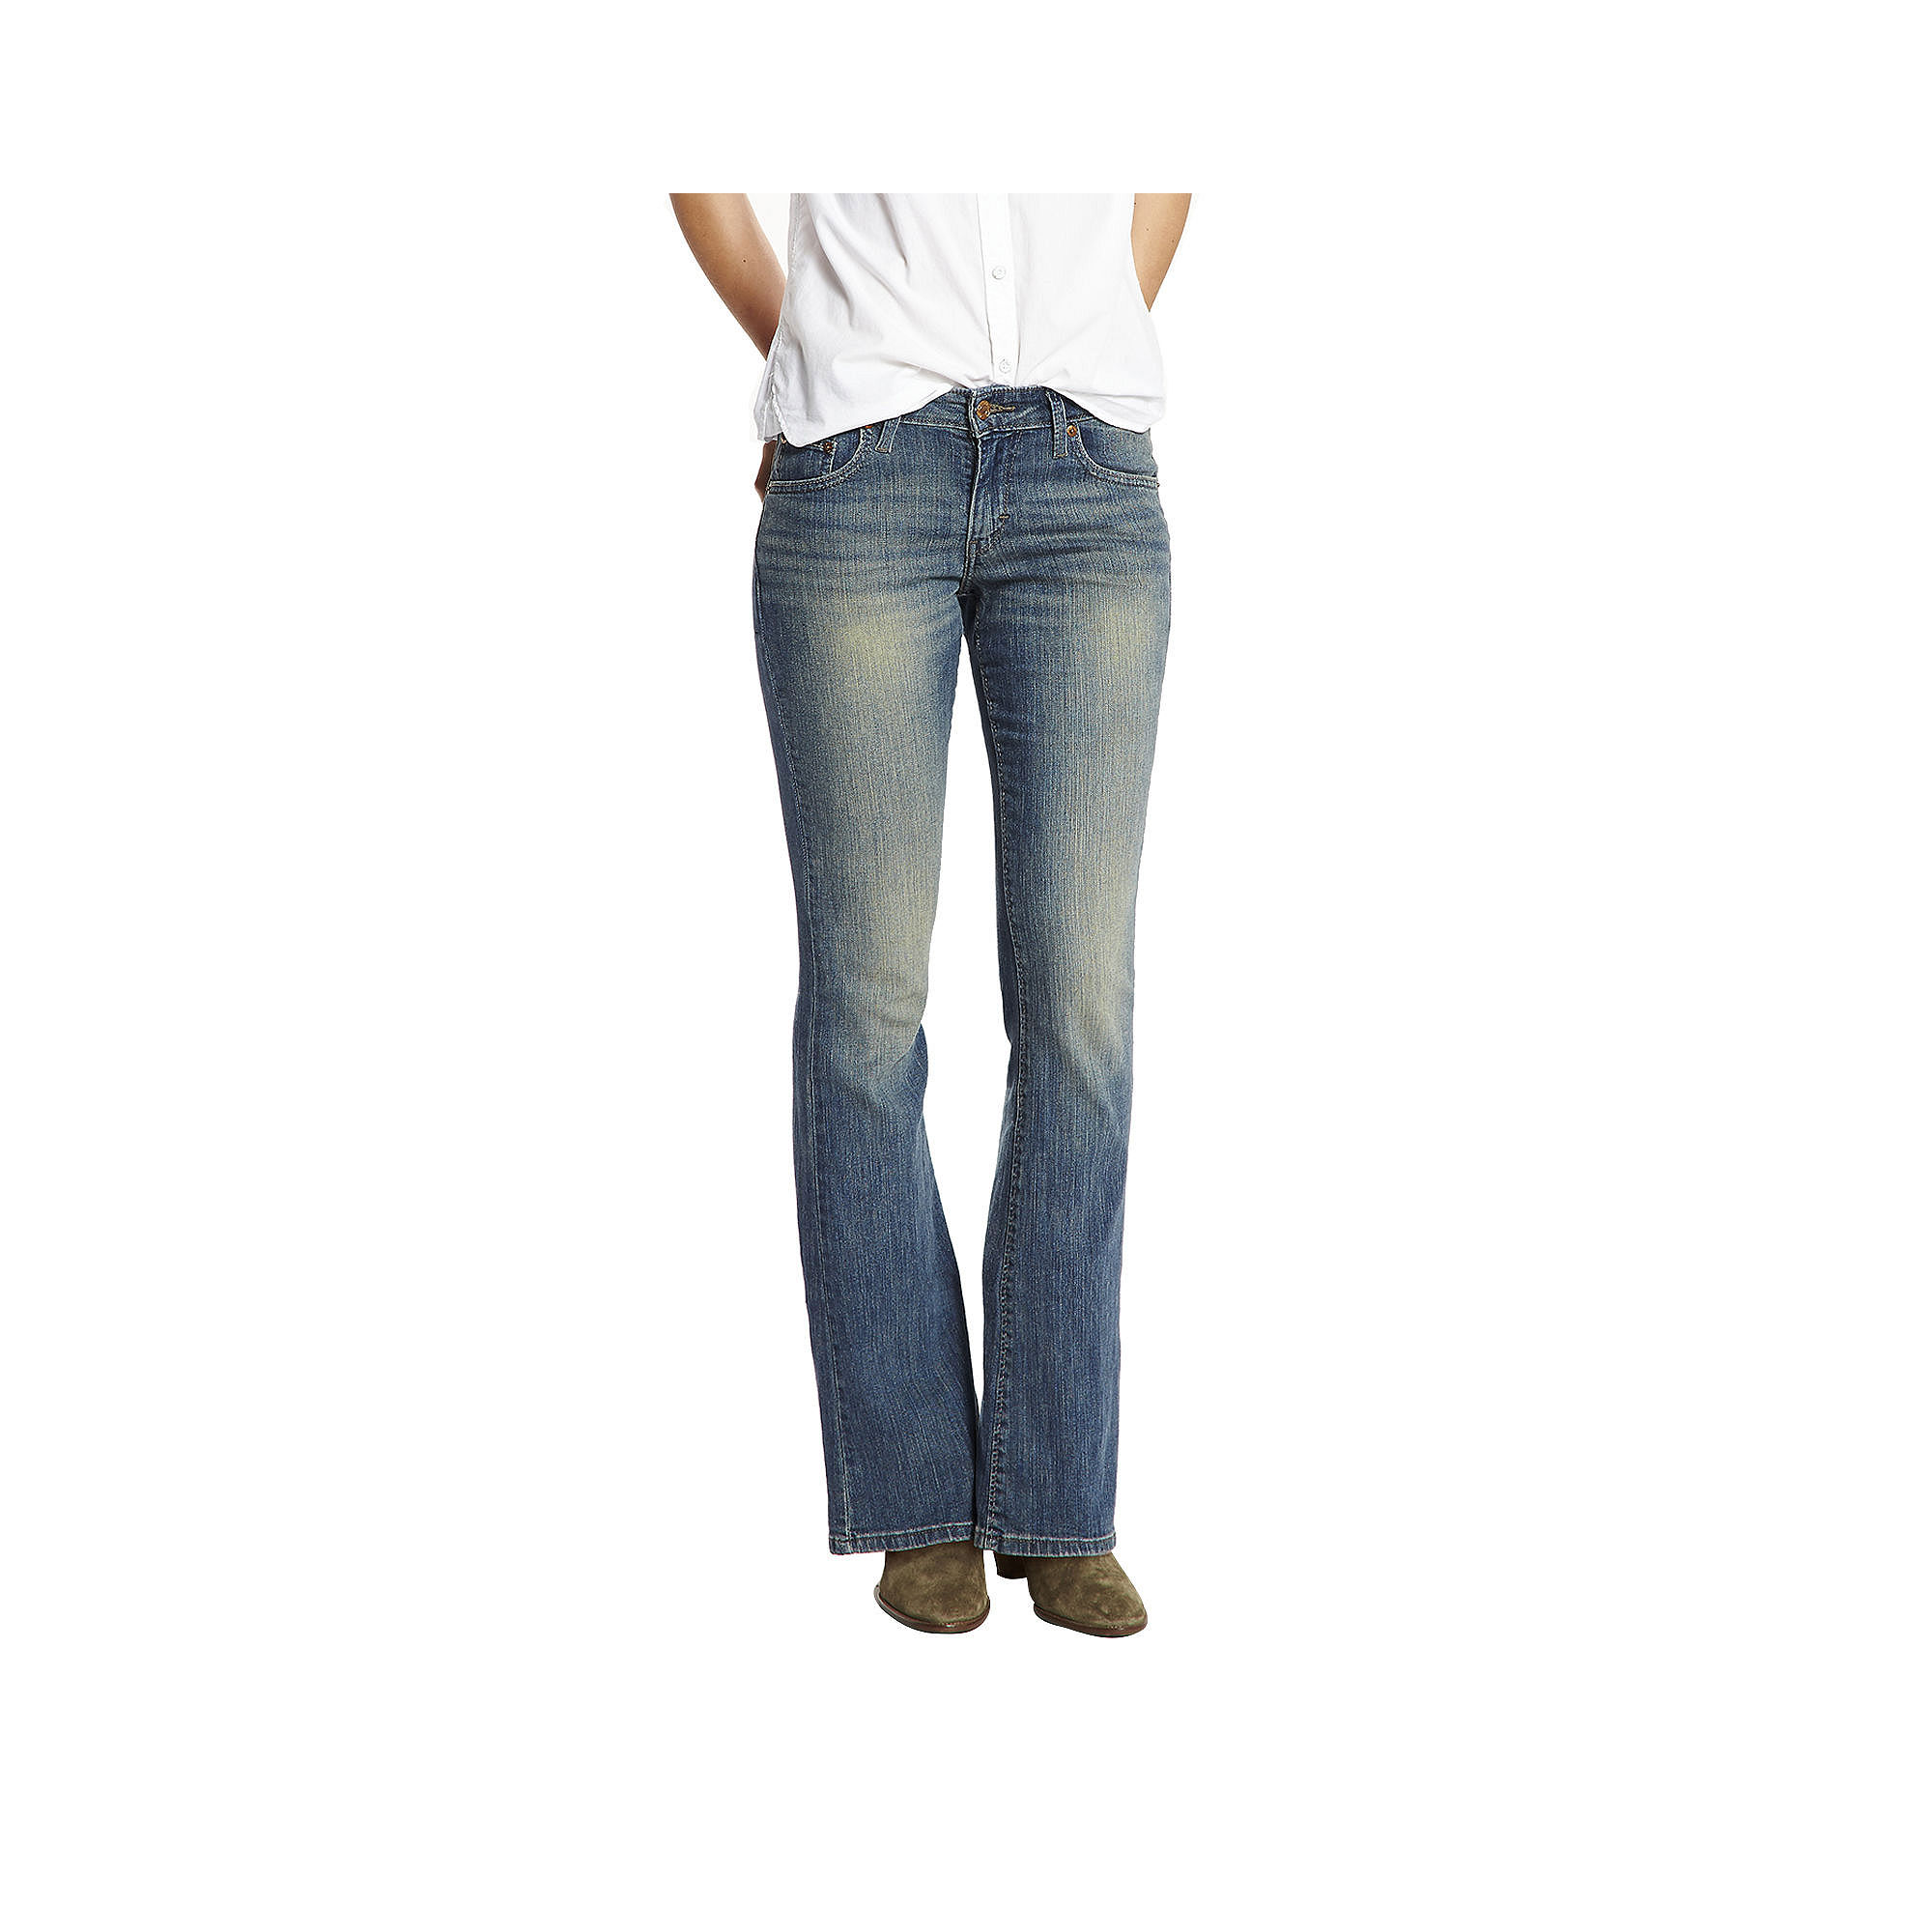 baeec11a UPC 604095189475 product image for Levi's 518 Bootcut Jeans | upcitemdb.com  ...